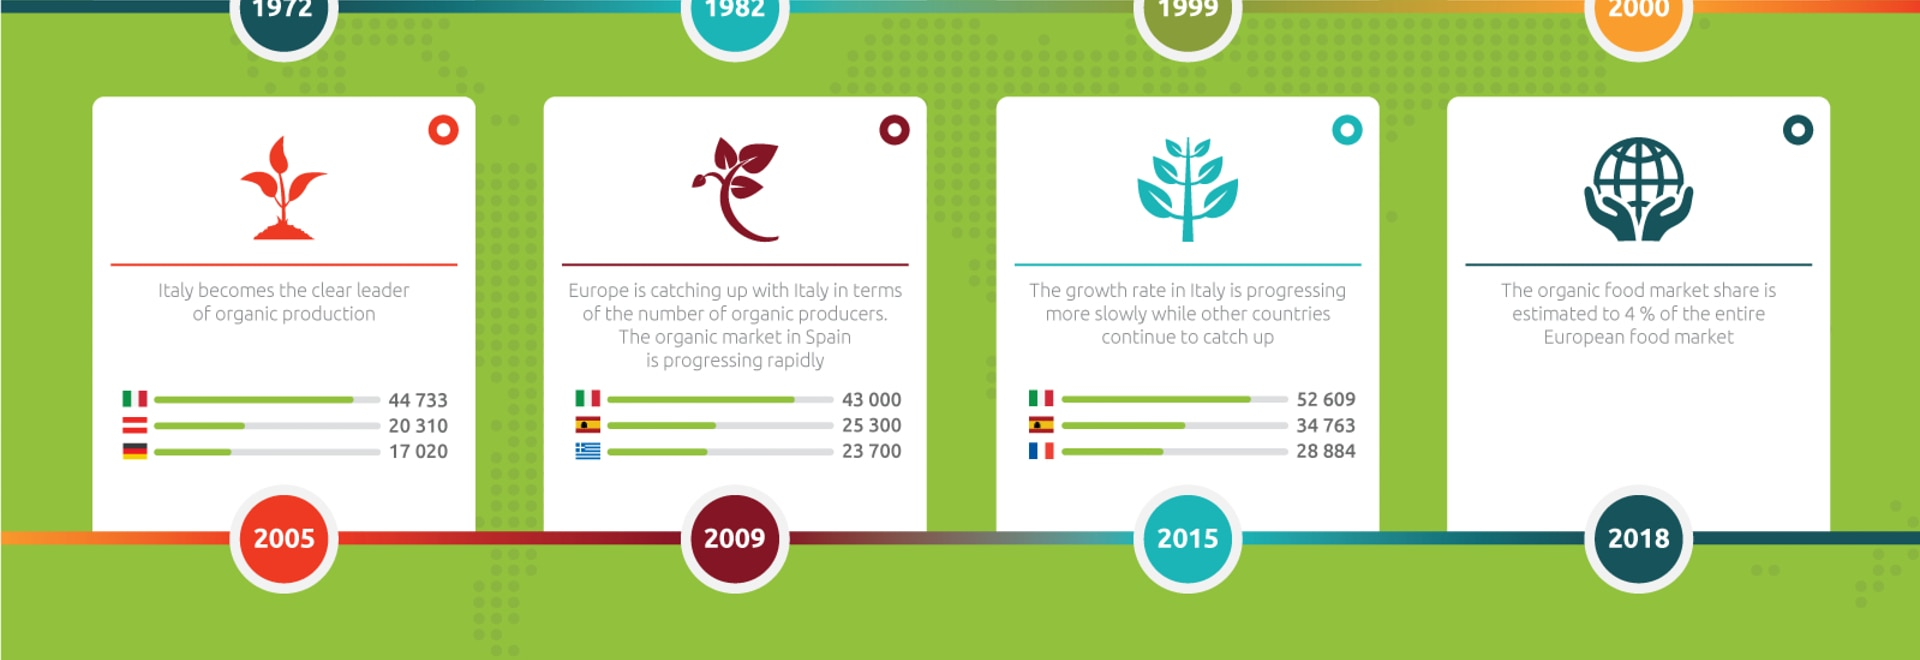 Europe loves ecofood. Blulog ensures it is delivered in correct conditions